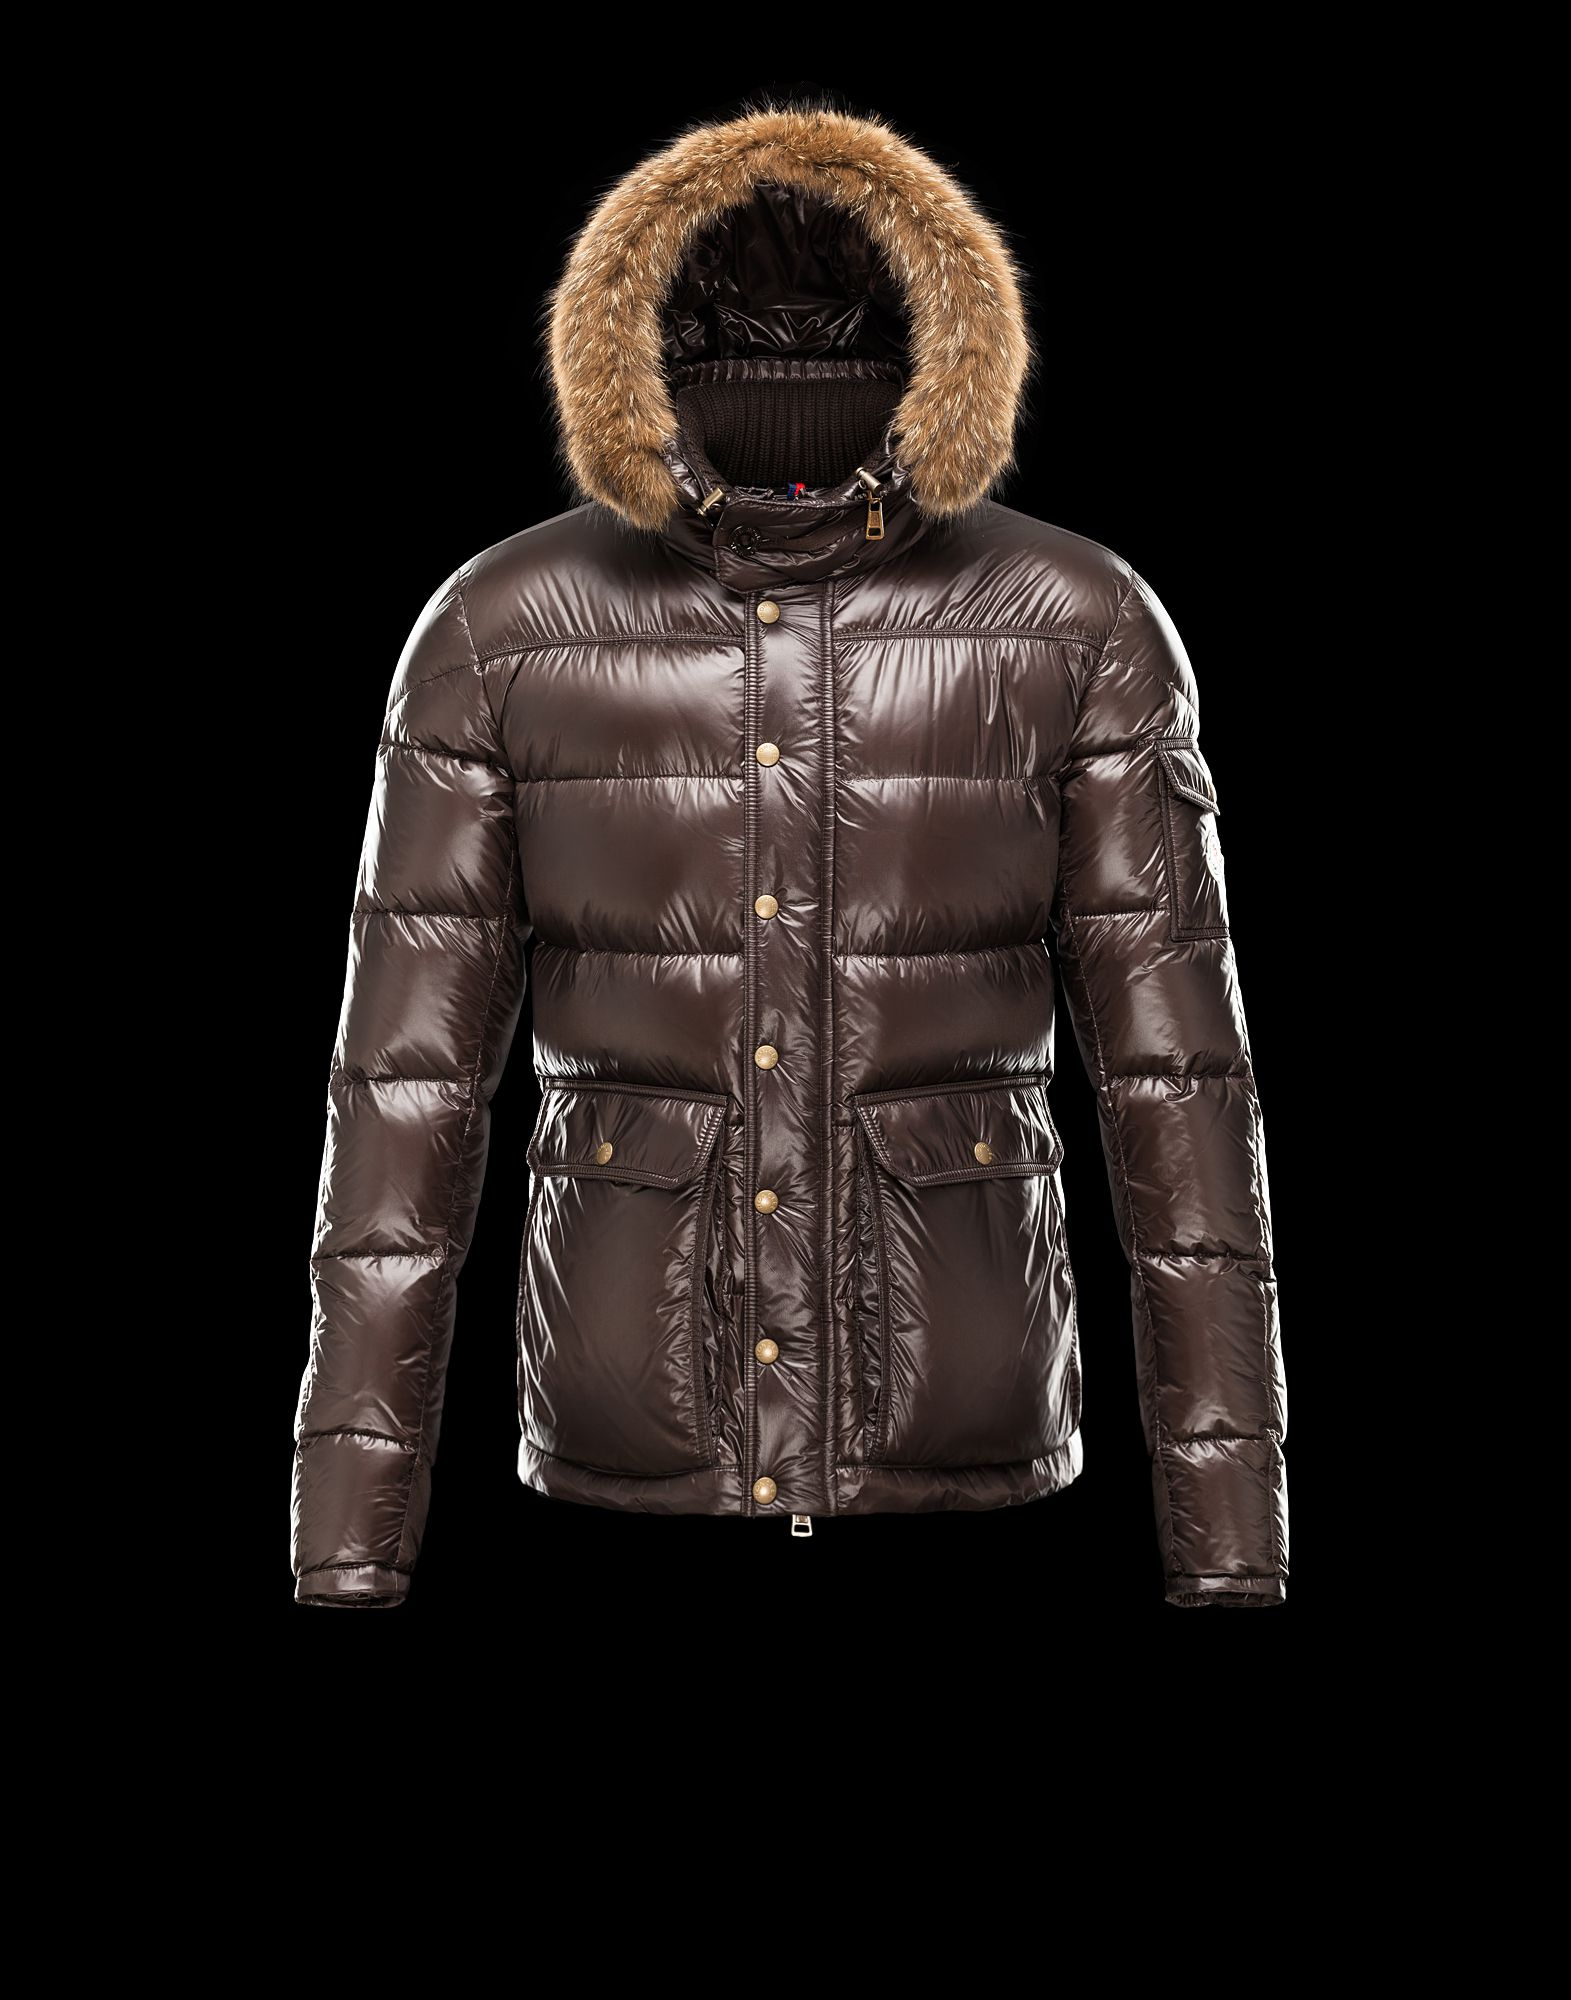 Cheap Moncler Hubert Men Coats Dark Brown With Fur Collar Removable Cap Sale NA1123